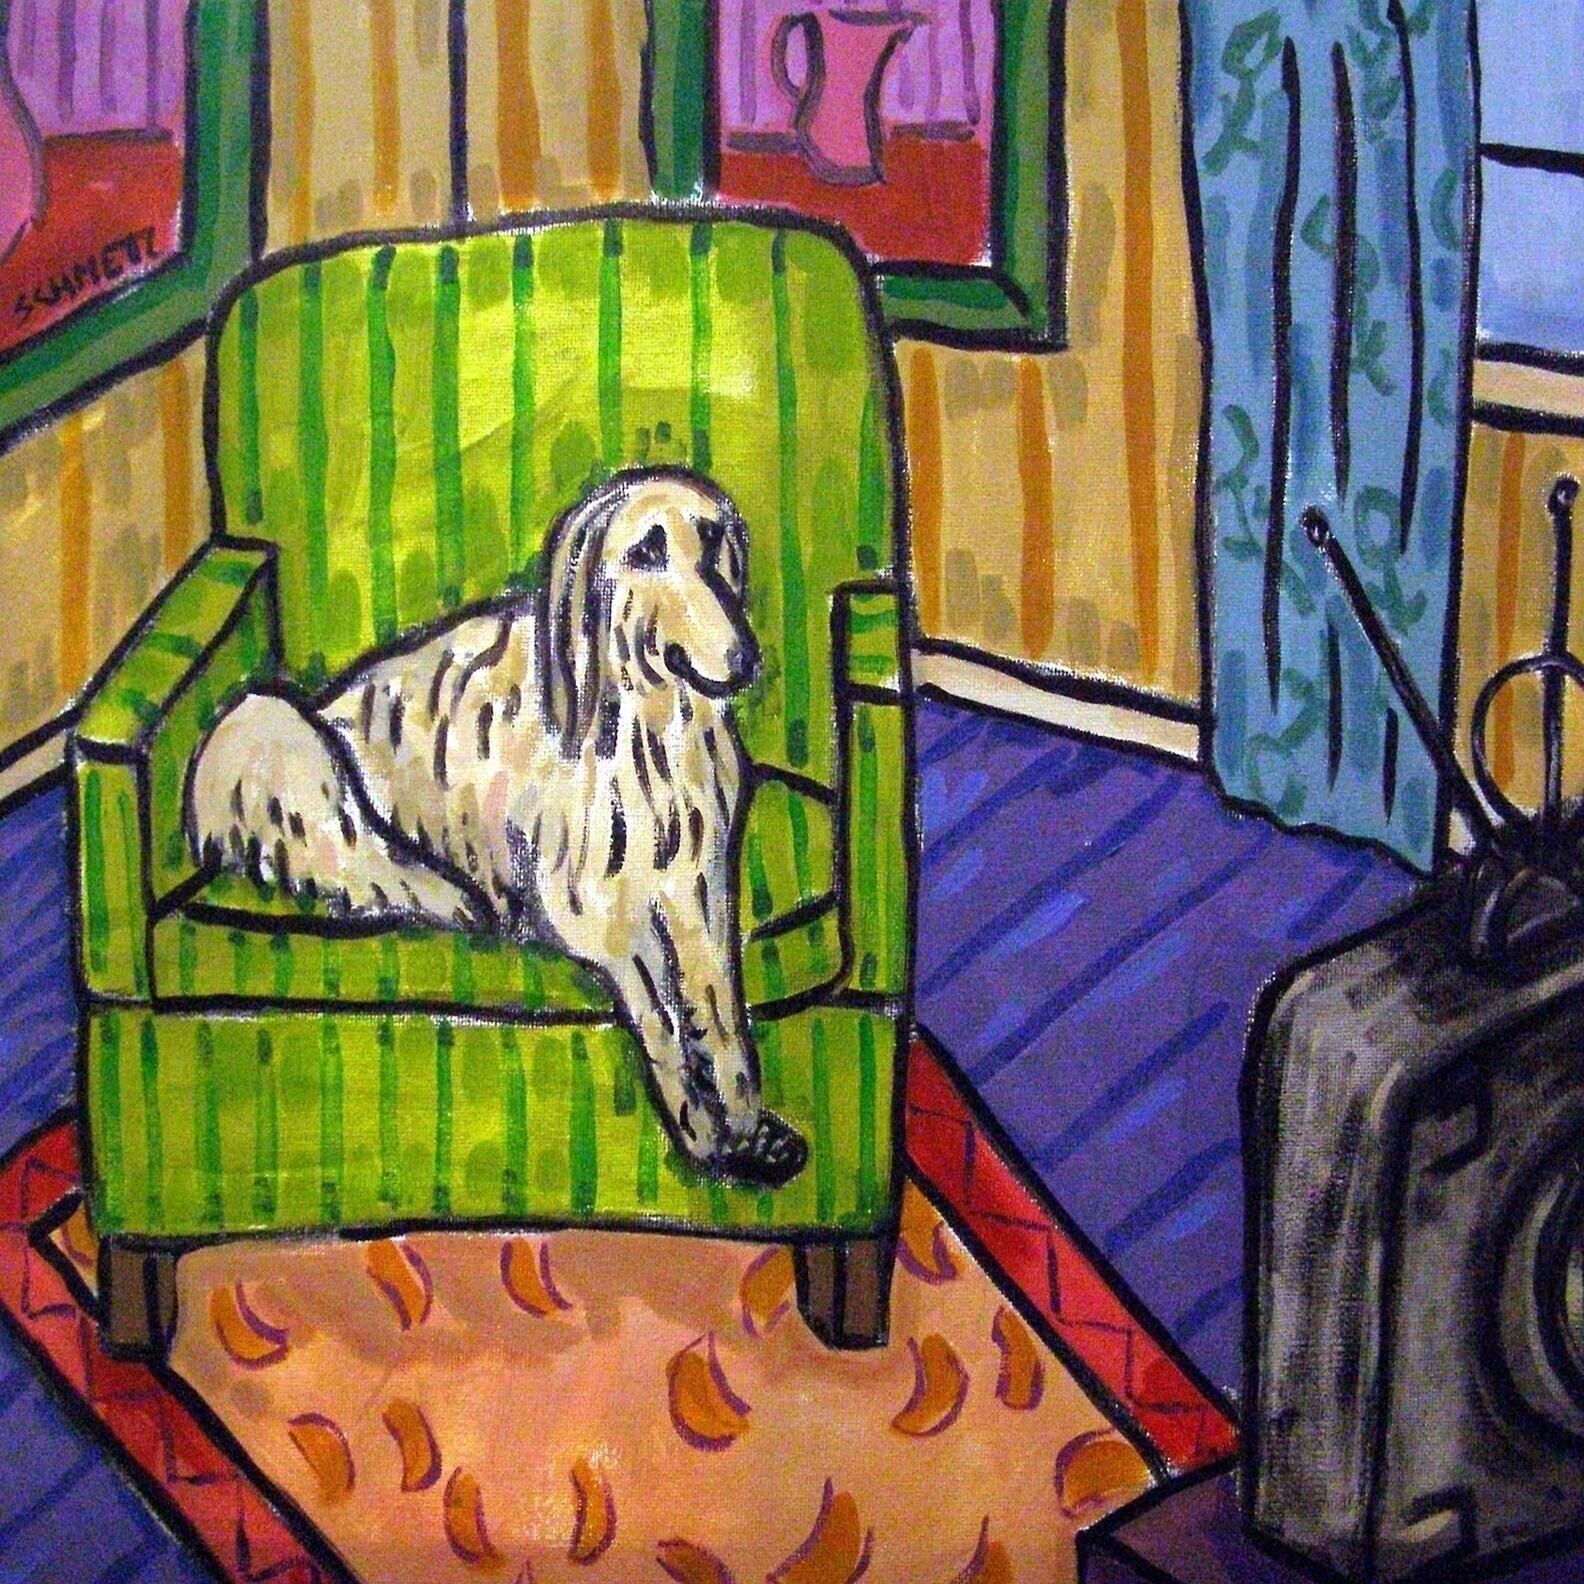 Afghan Hound at the cigar bar dog art tile tiles coaster gift coasters dogs